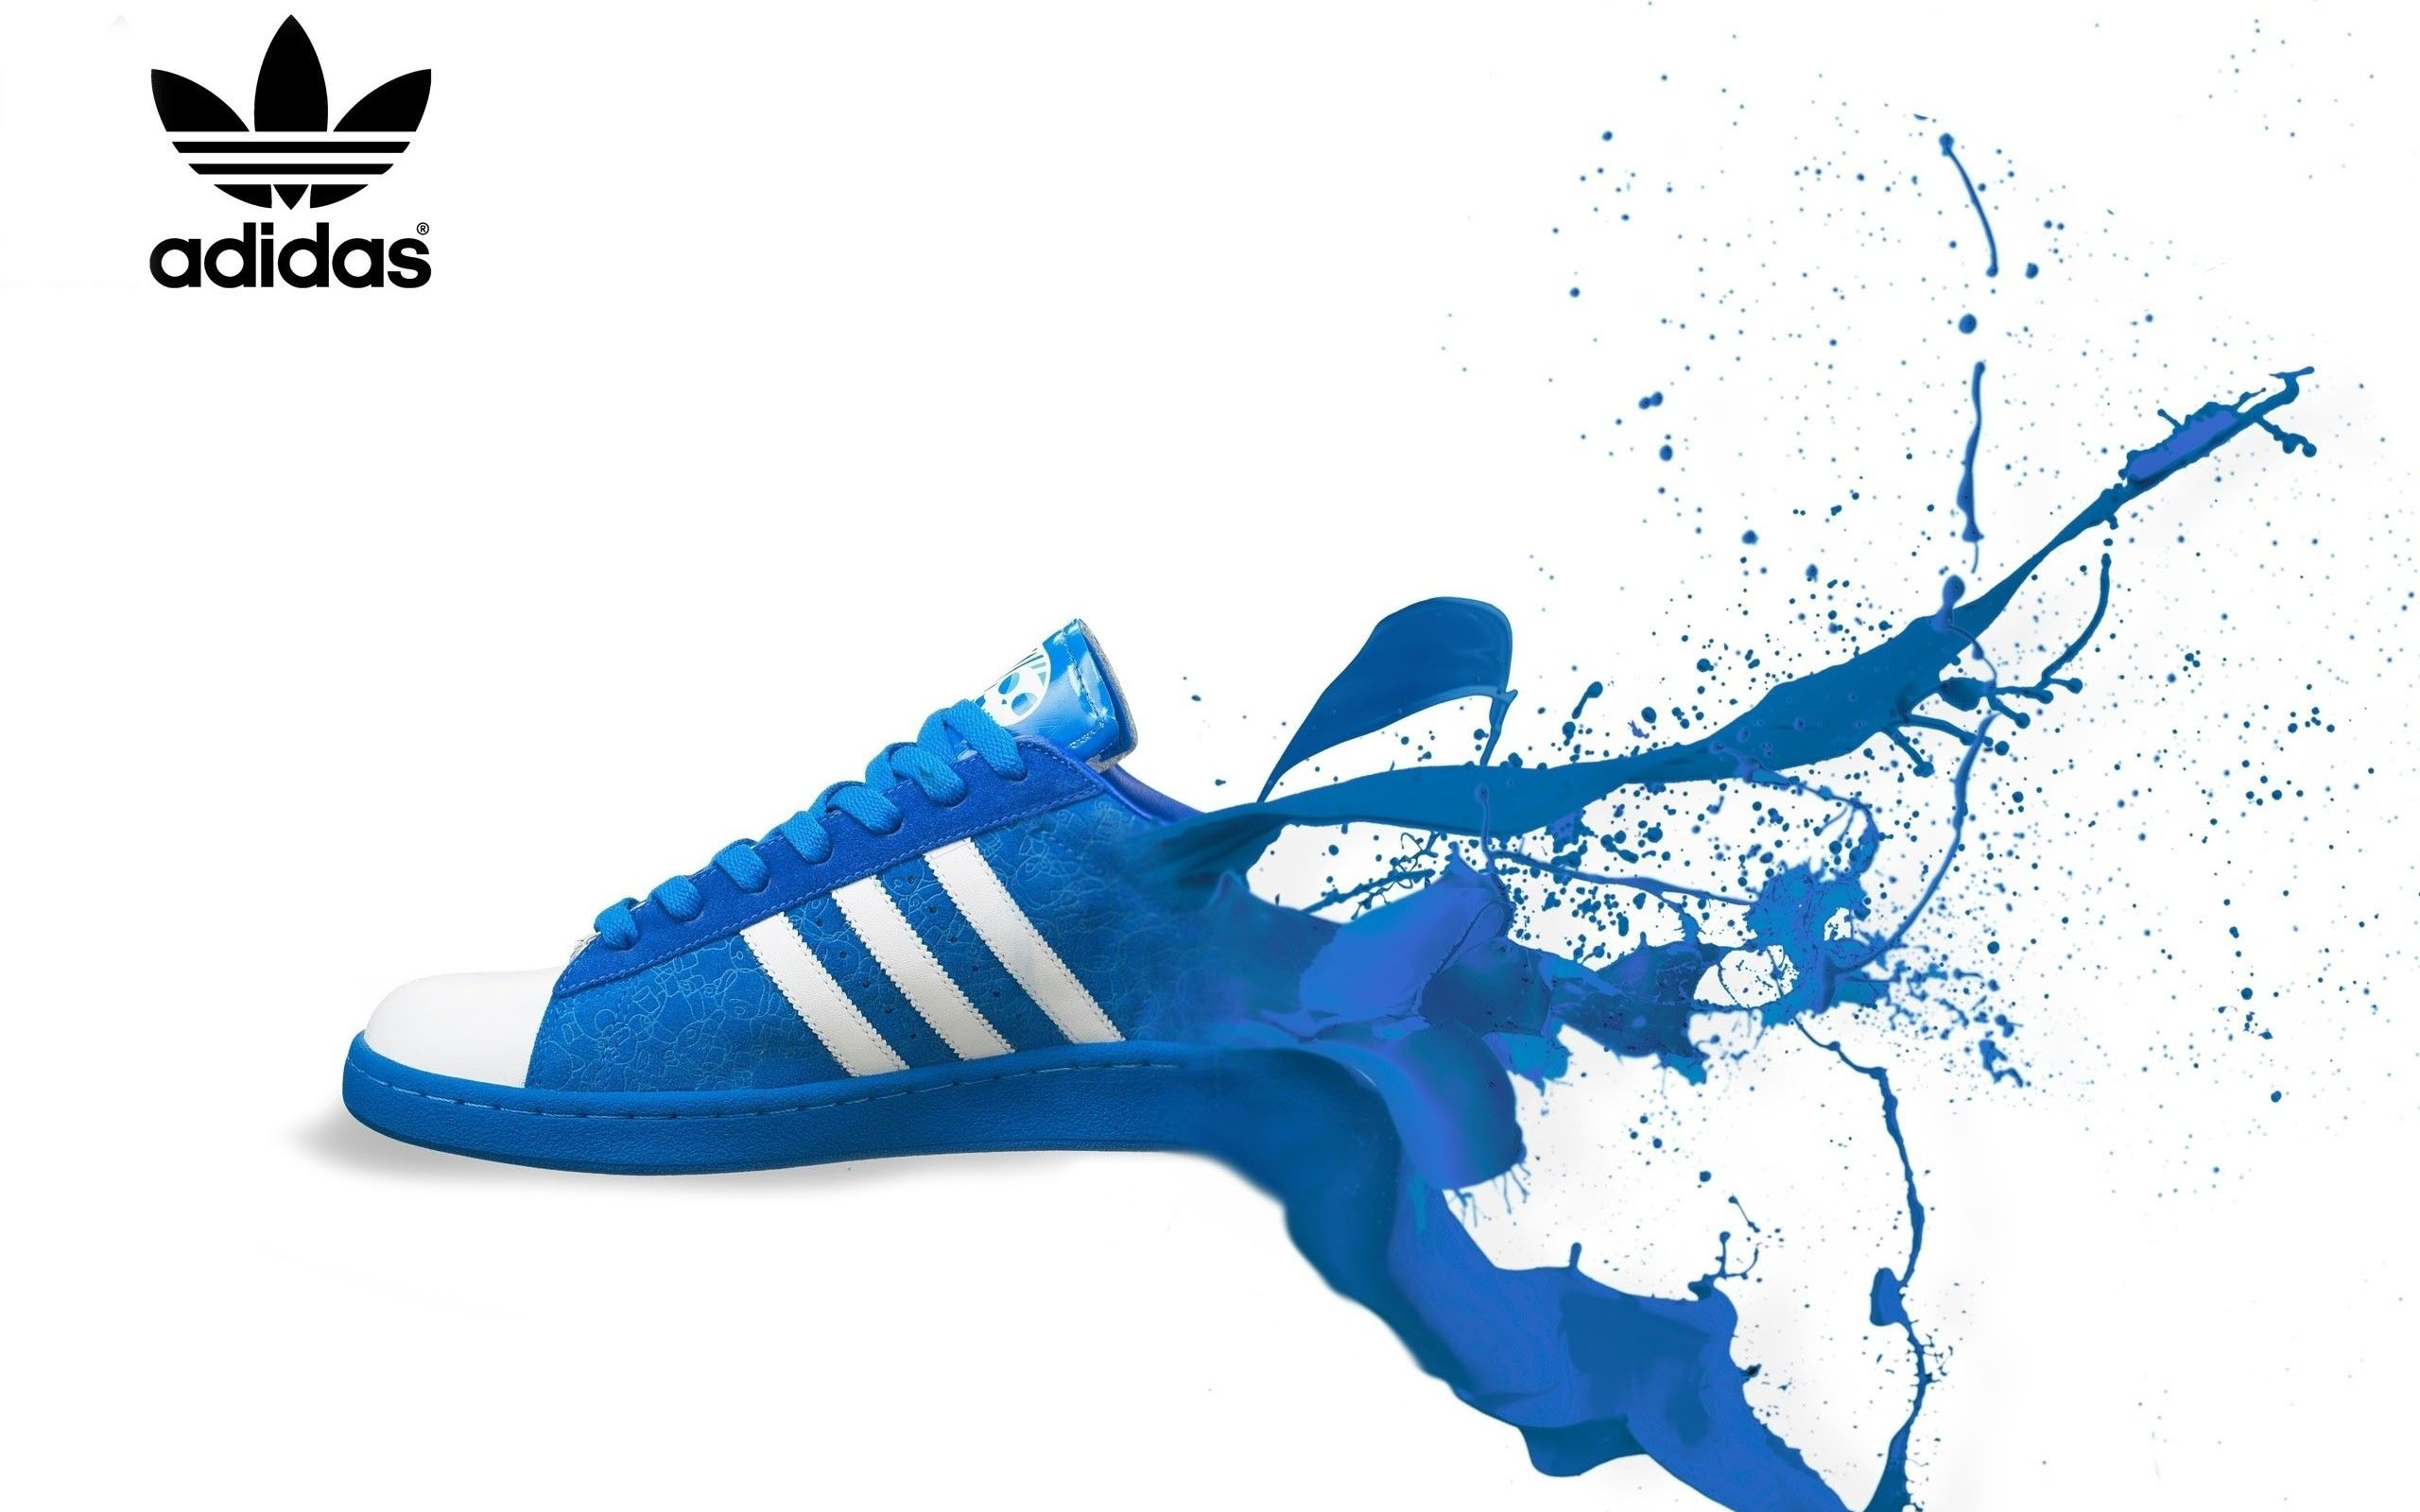 Adidas Blue Shoe Adidas Blue Shoe is an HD desktop wallpaper posted in our  free image